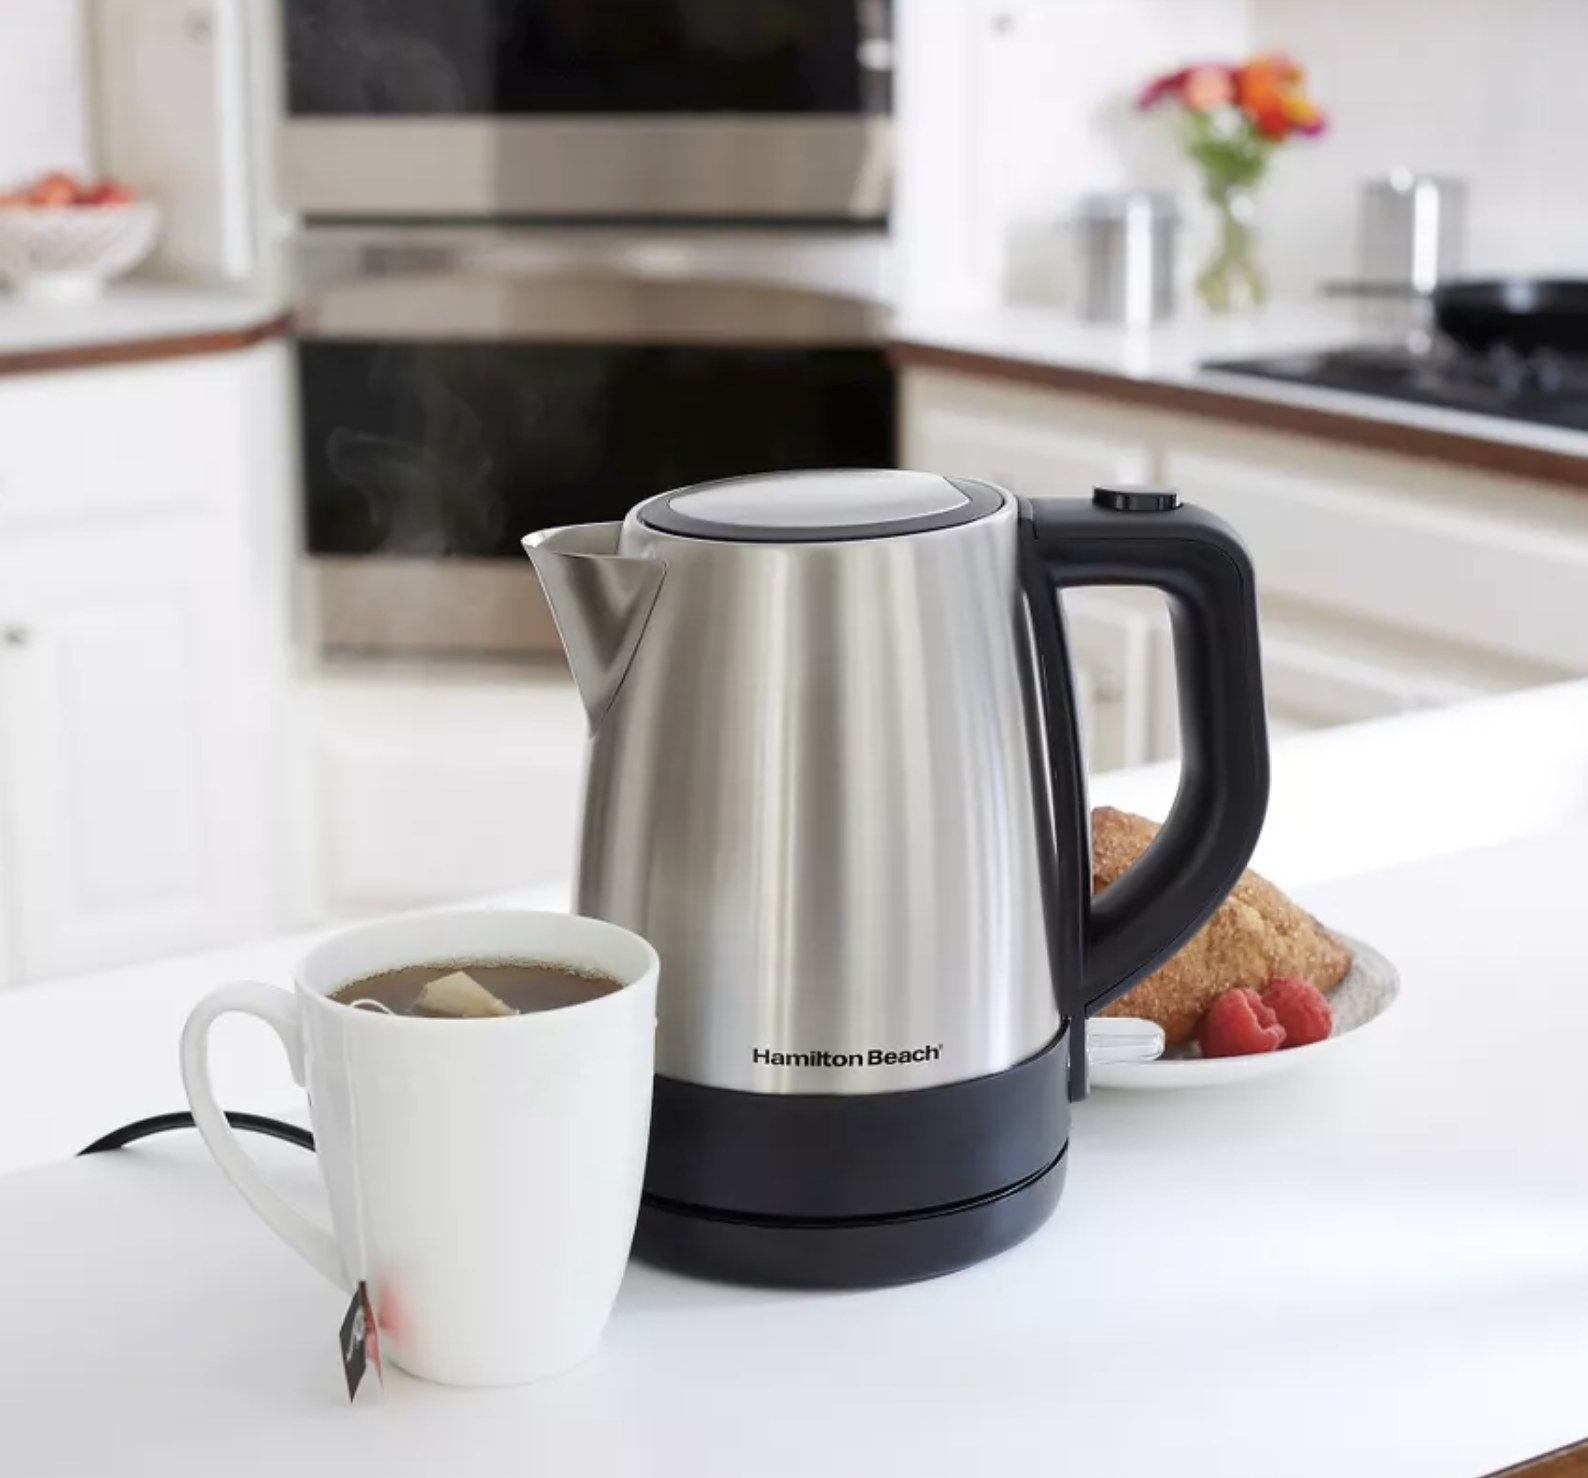 a stainless steel water kettle next to pastries and a cup of tea